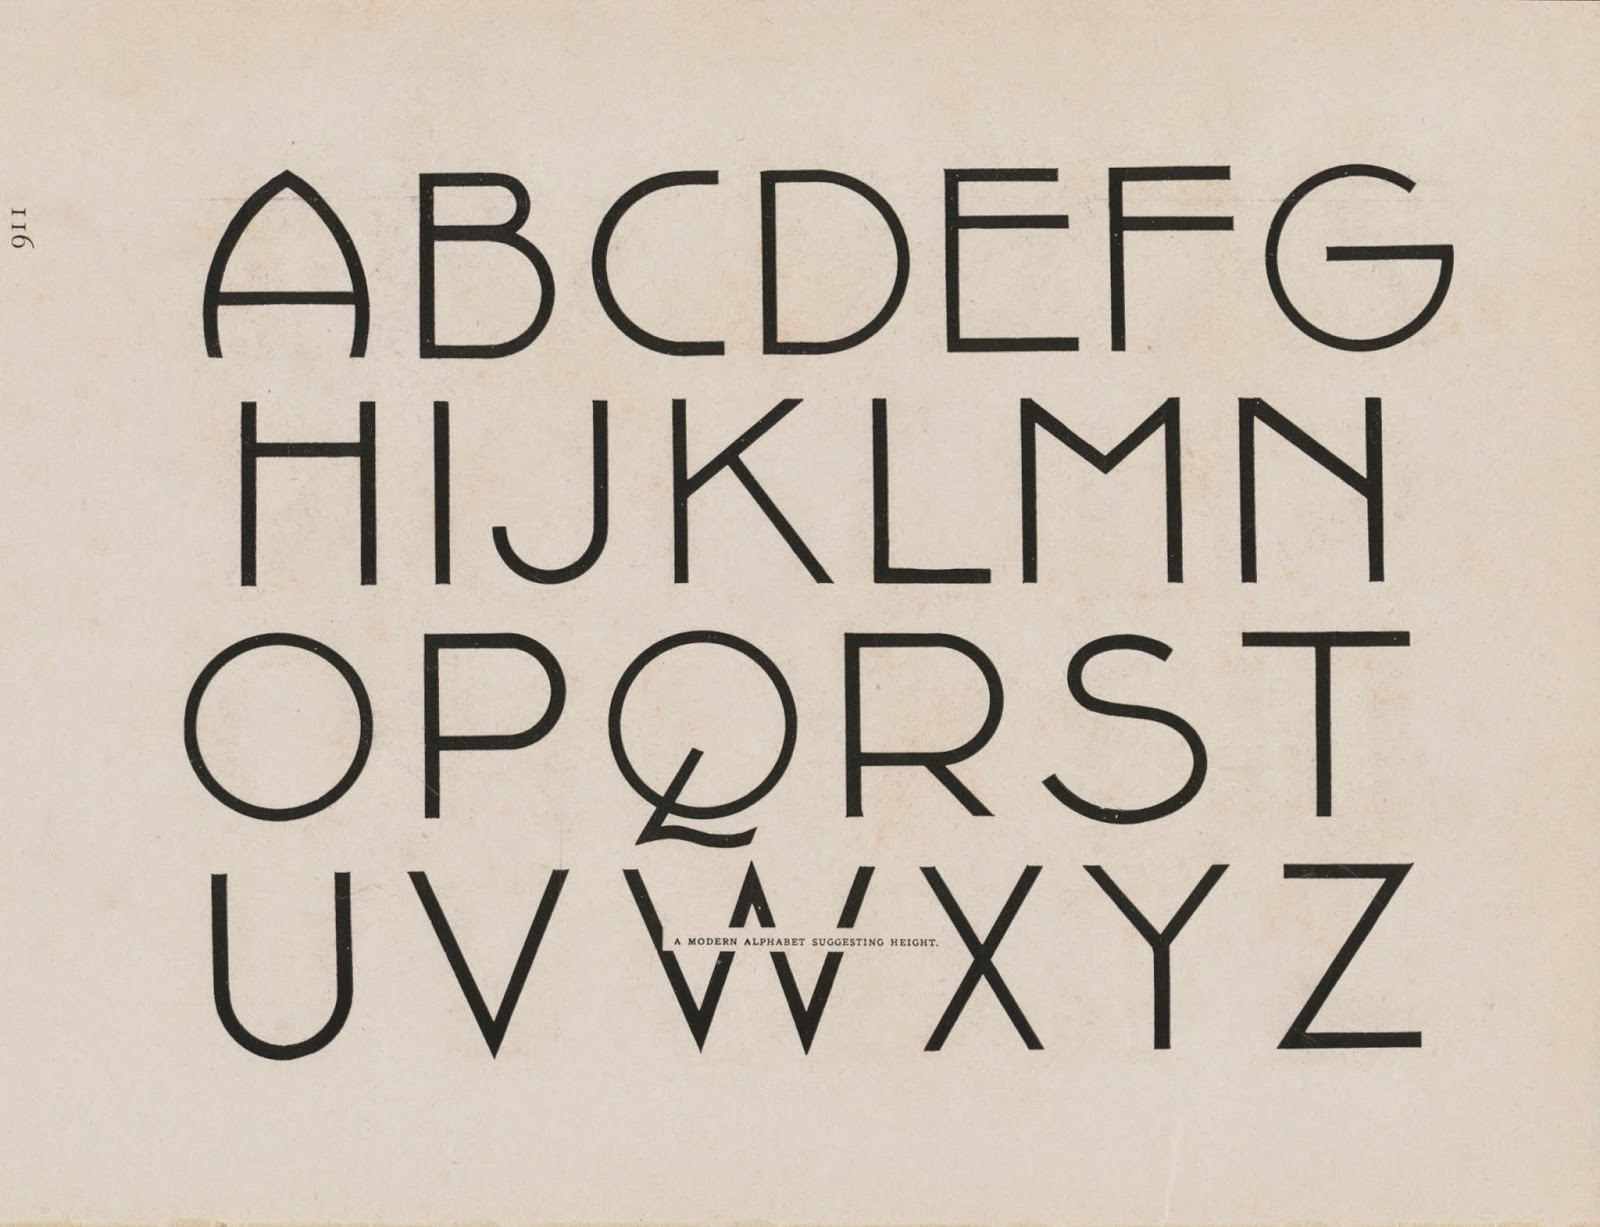 lettering alphabets and numerals